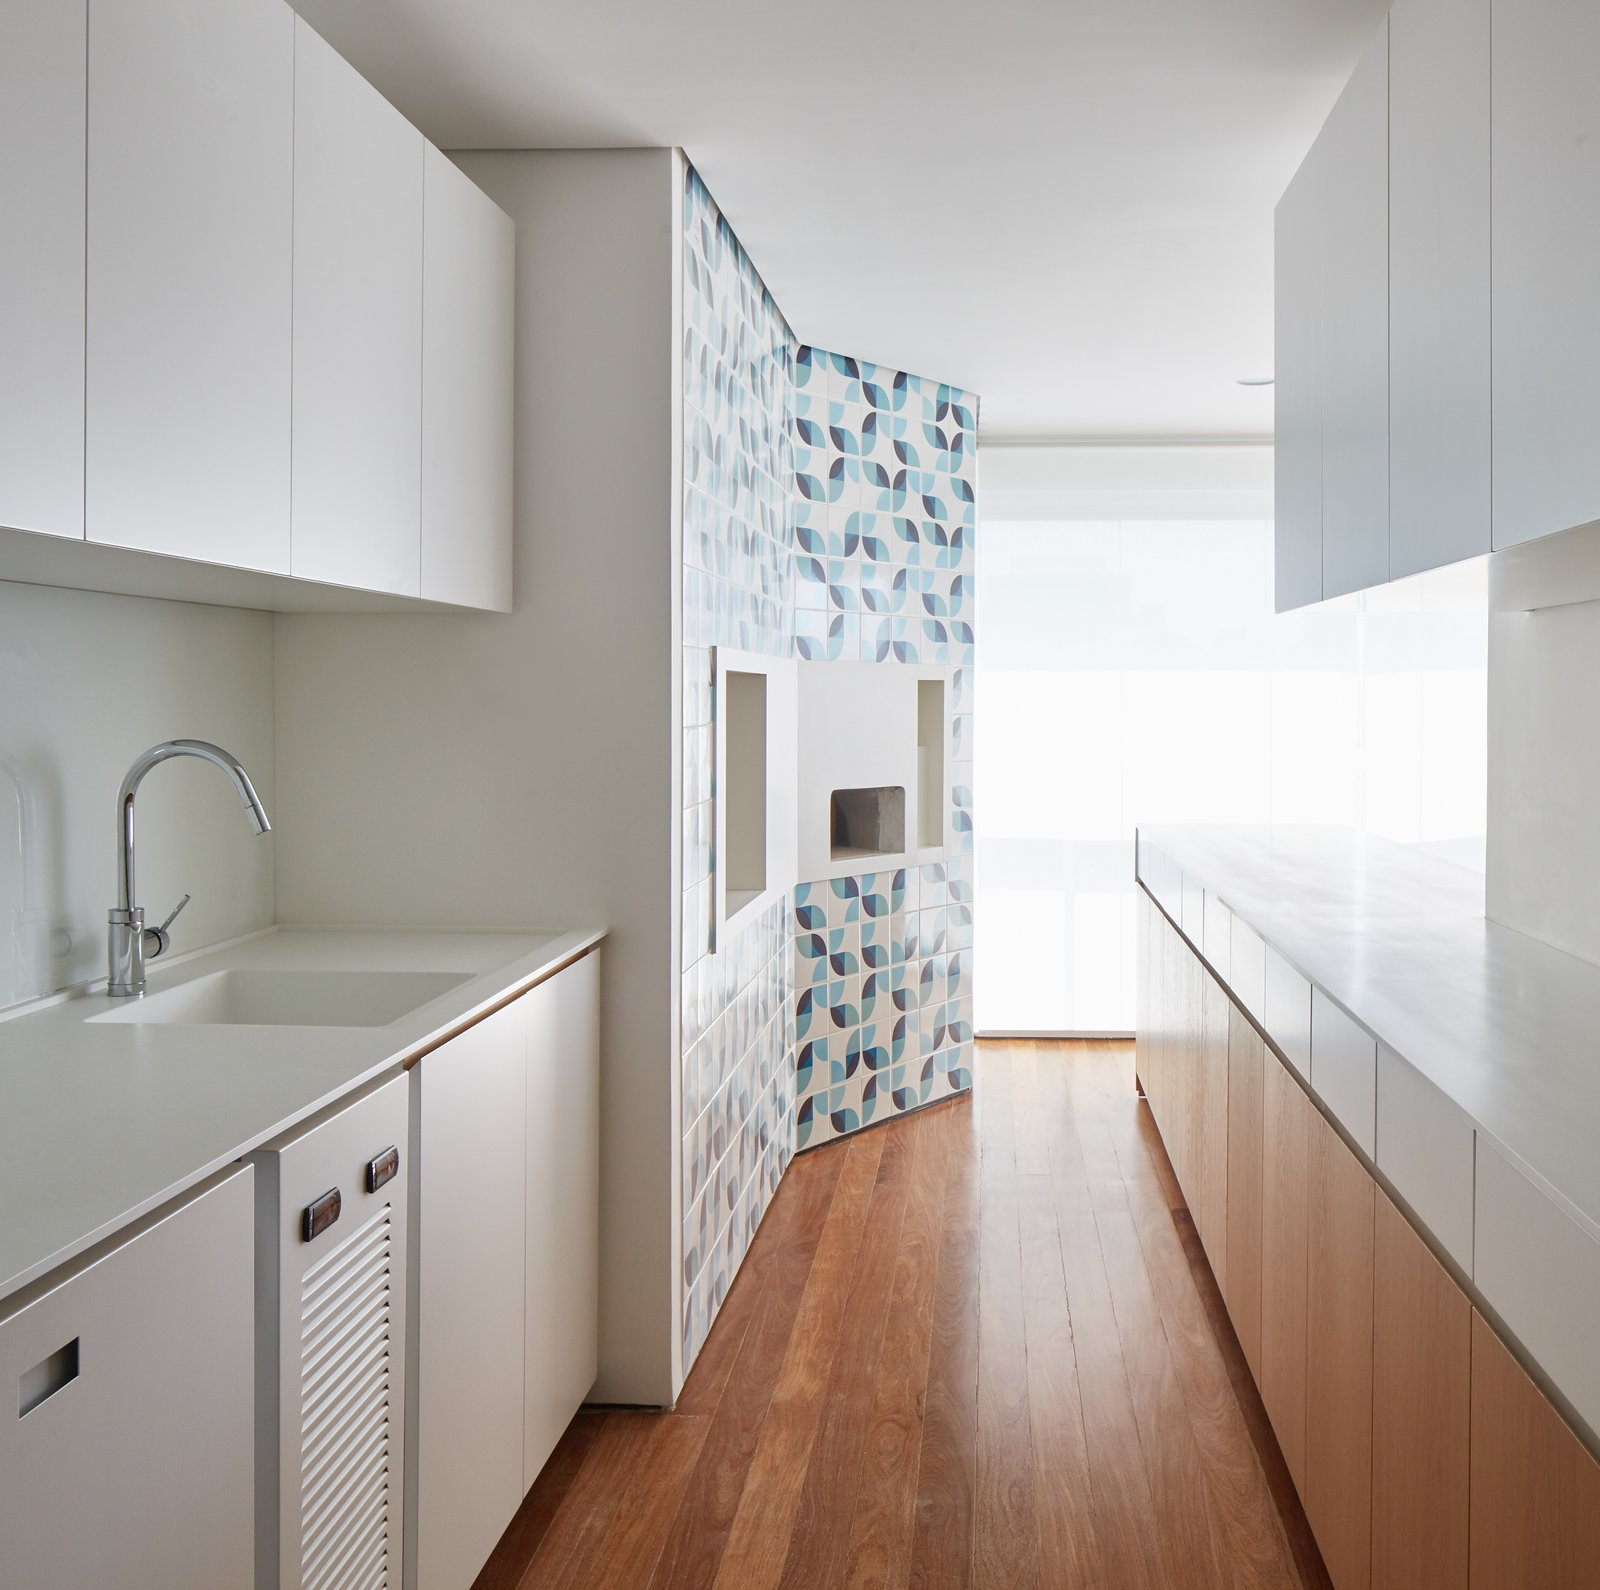 Kitchen, Medium Hardwood Floor, Wood Cabinet, White Cabinet, and Drop In Sink A  Photo 8 of 17 in Color Unites With Texture to Make This Brazilian Abode Appear Much Larger and Brighter